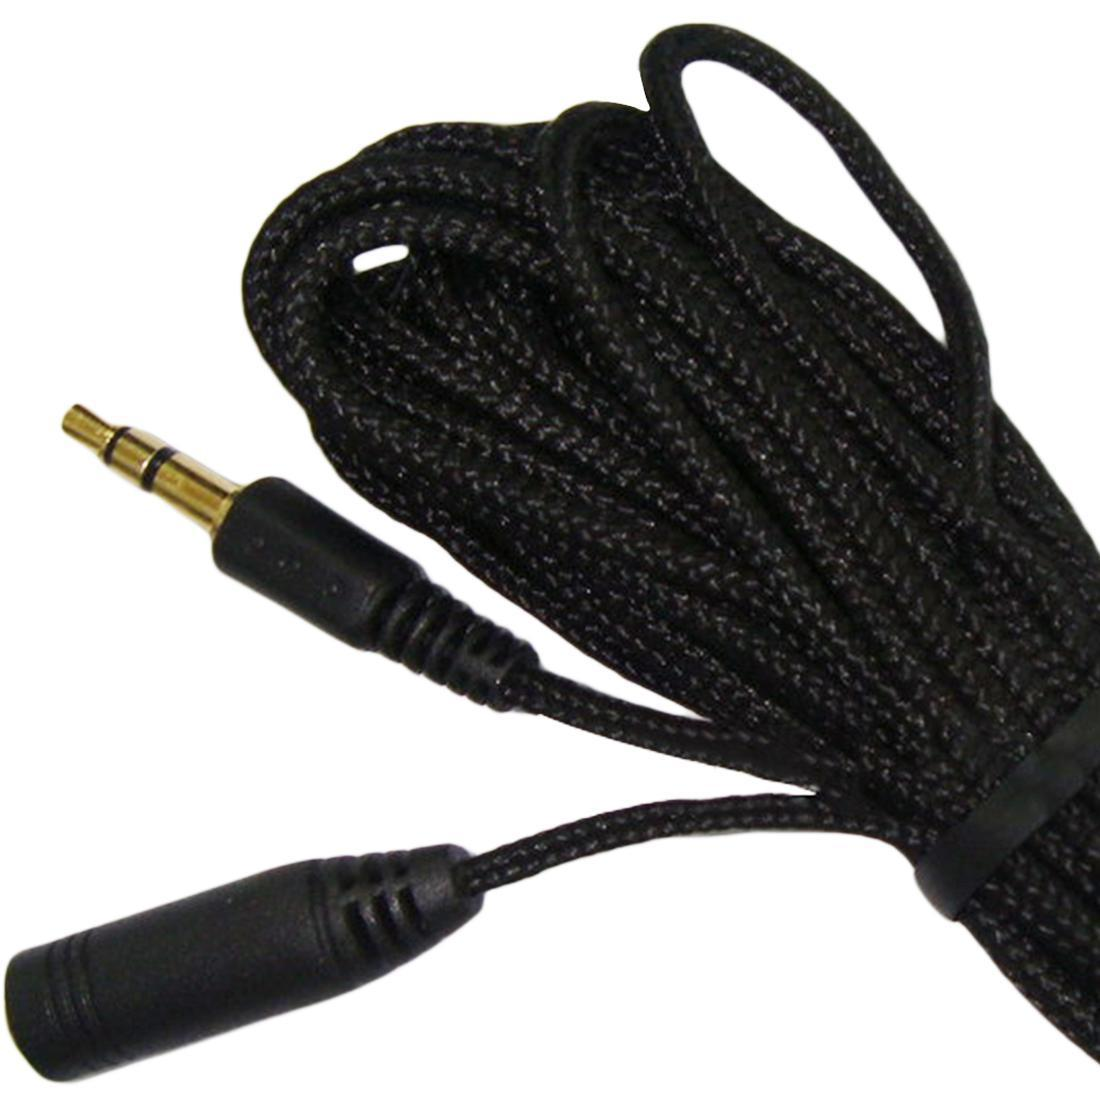 3.5 mm Stereo Audio Earphone Extension Cable 5m / 3m / 1.5 m Utra Long for headphone computer phone phone mp3 / 4